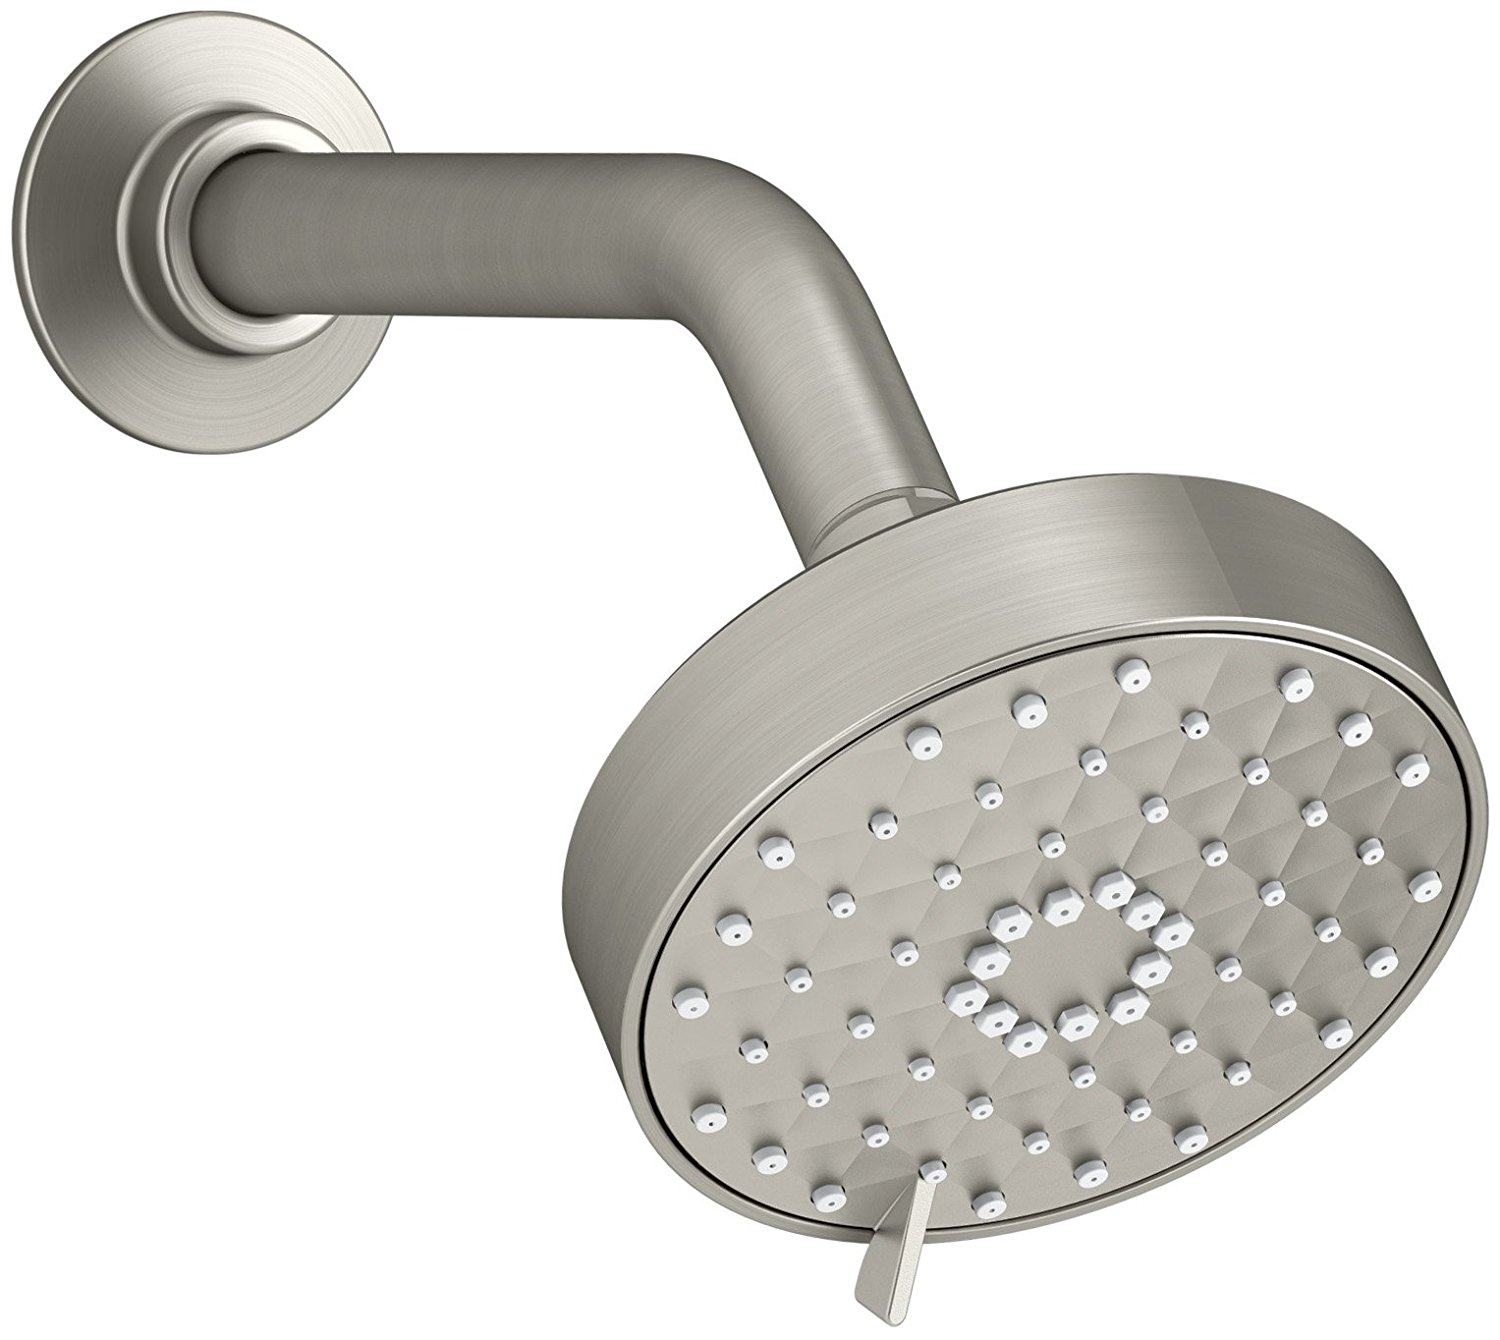 Merveilleux KOHLER K 72419 BN Awaken G110 Multifunction Showerhead, Vibrant Brushed  Nickel